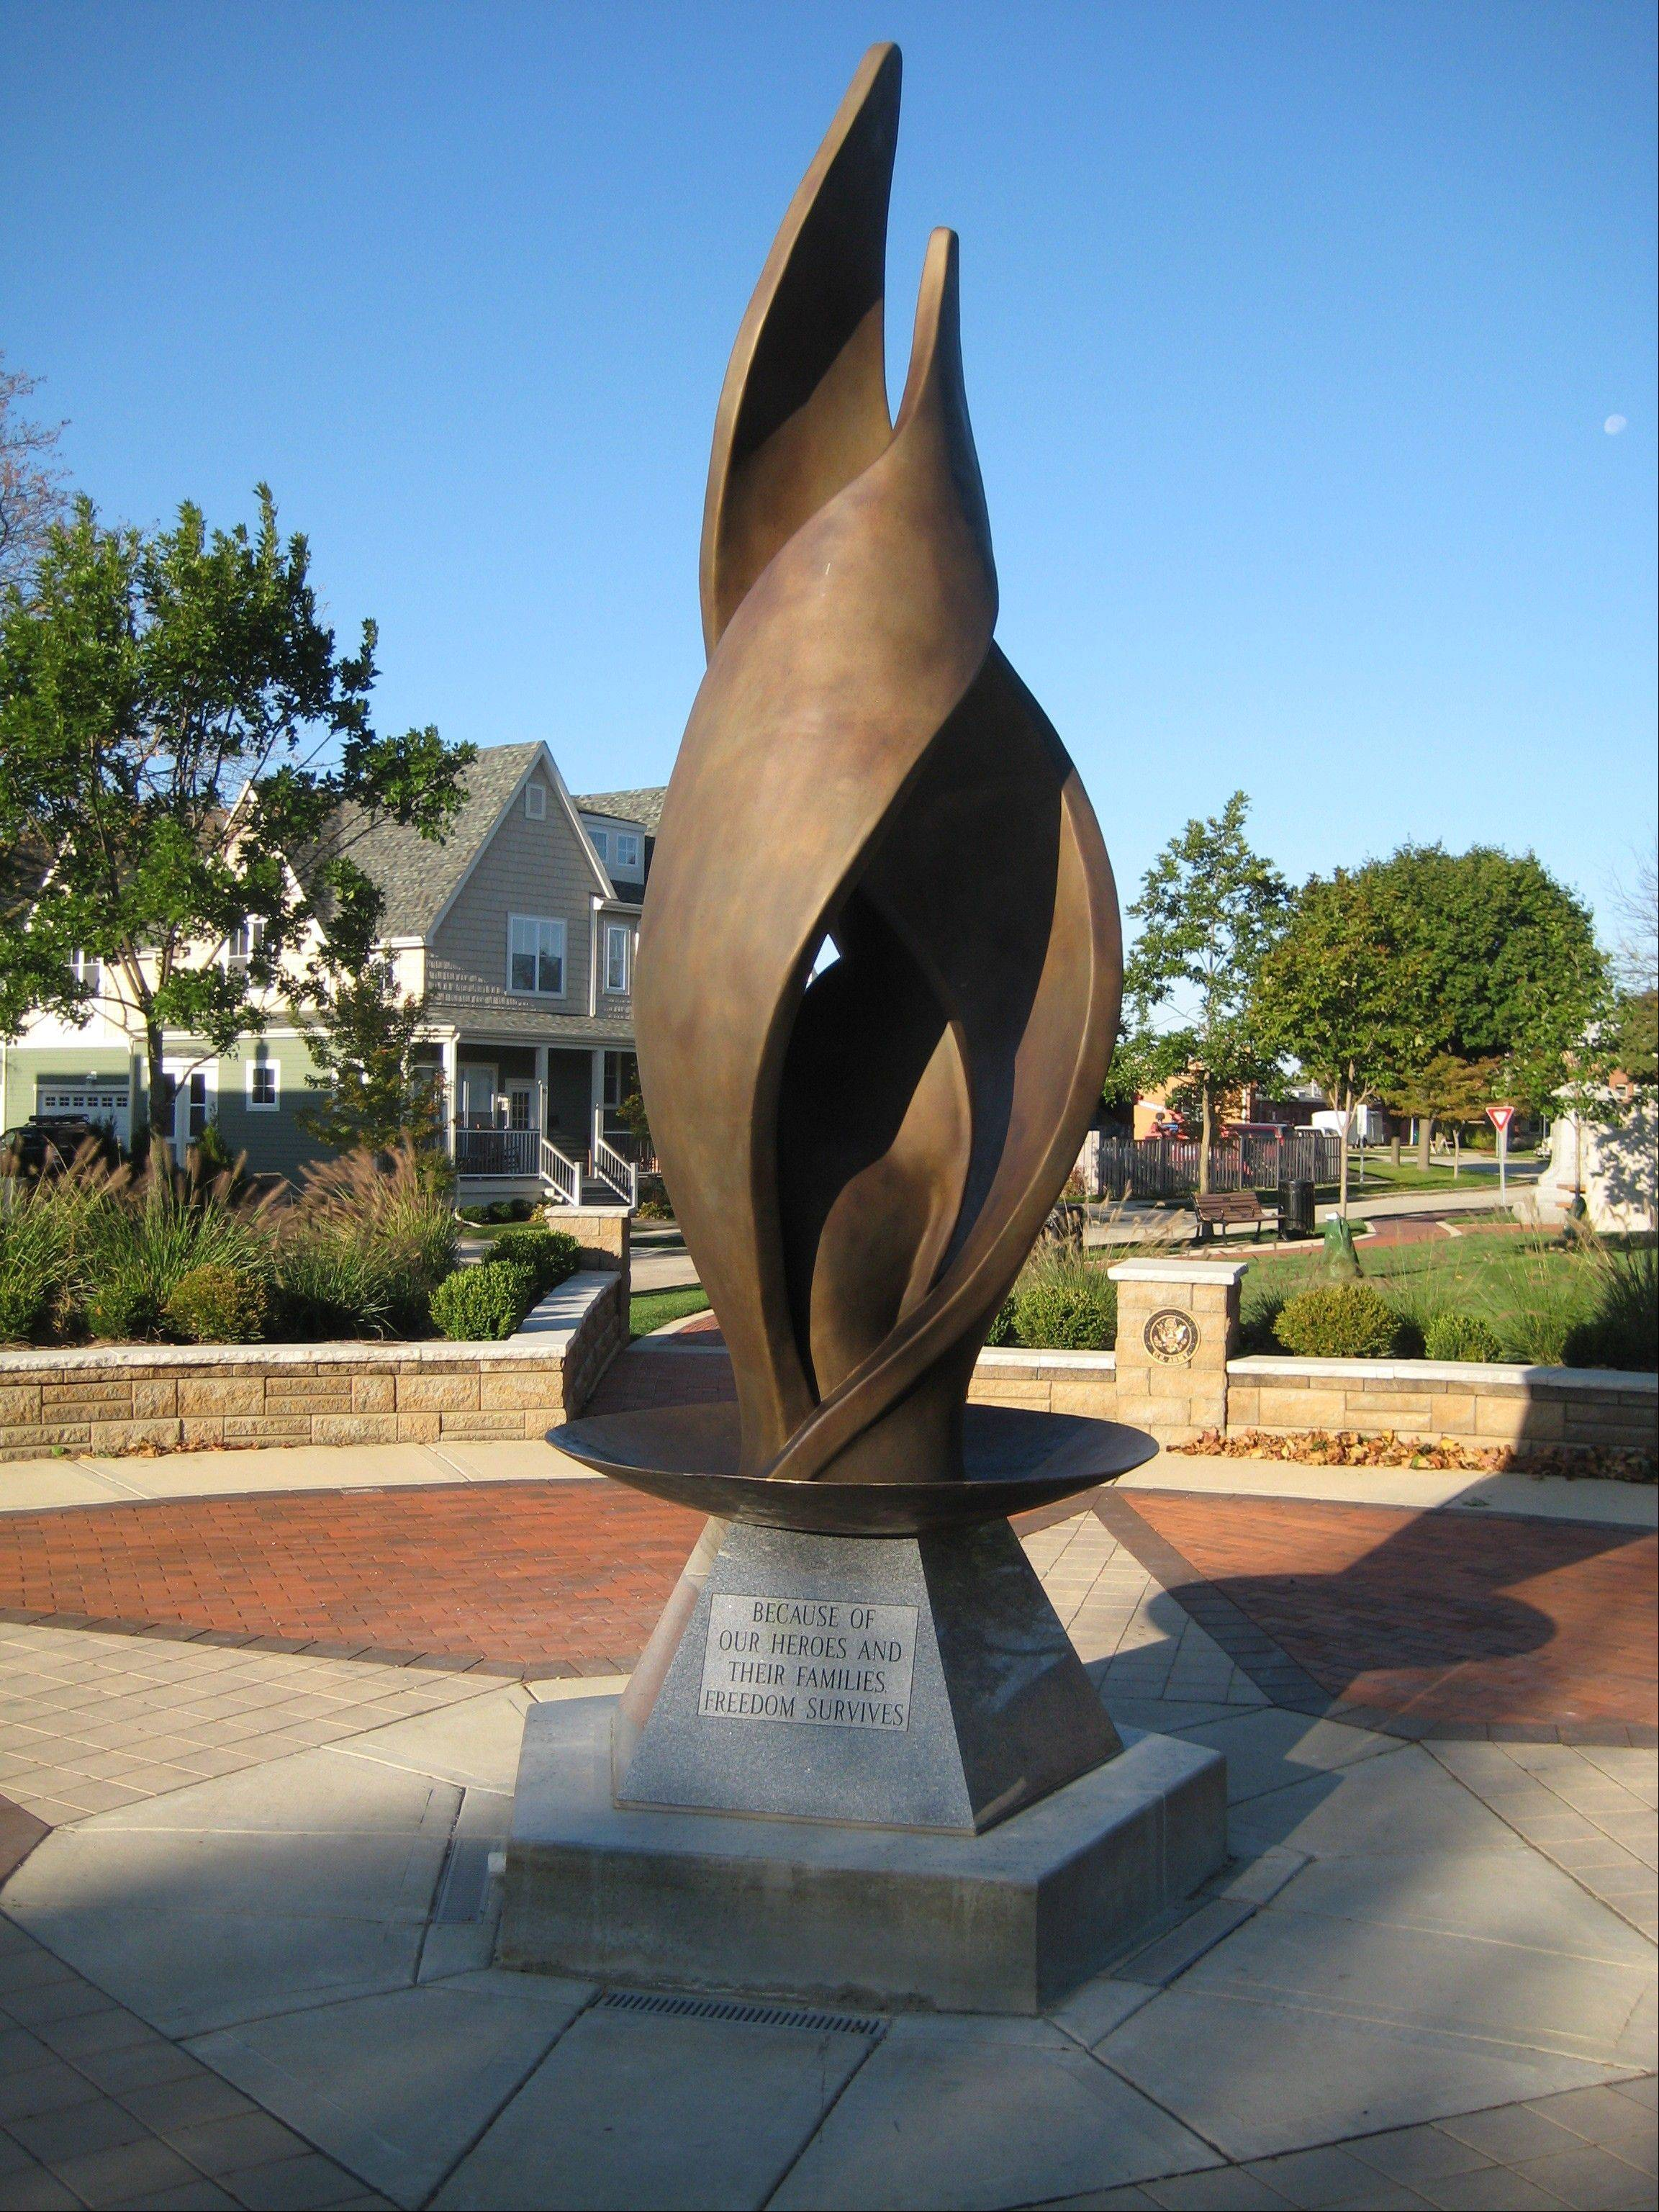 Fran Volz' 15-foot tall bronze eternal flame sculpture at Memorial Park.